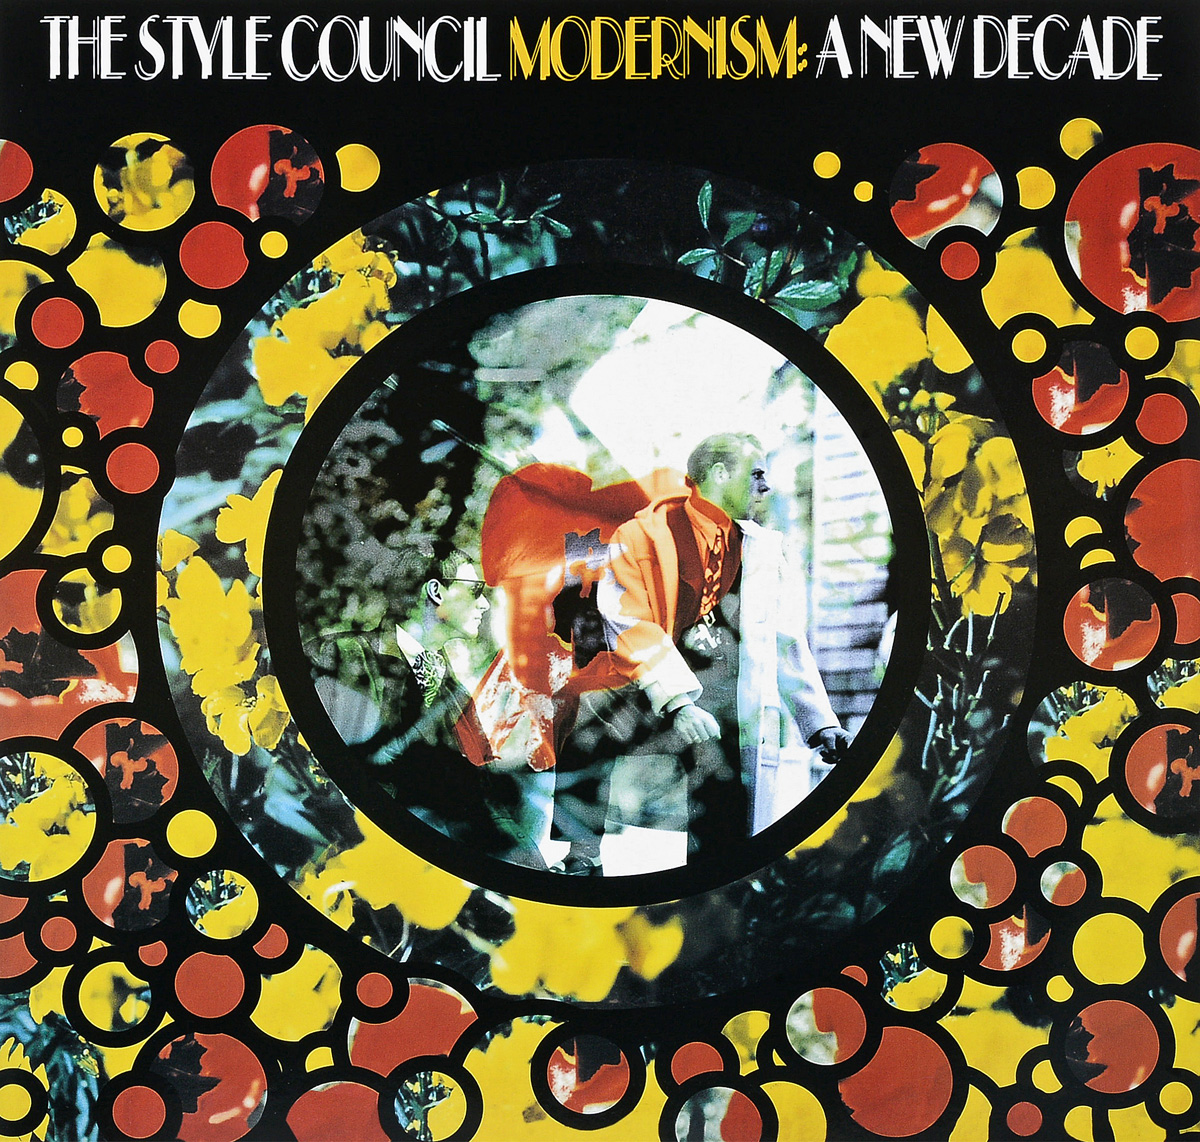 The Style Council The Style Council. Modernism: A New Decade (2 LP)